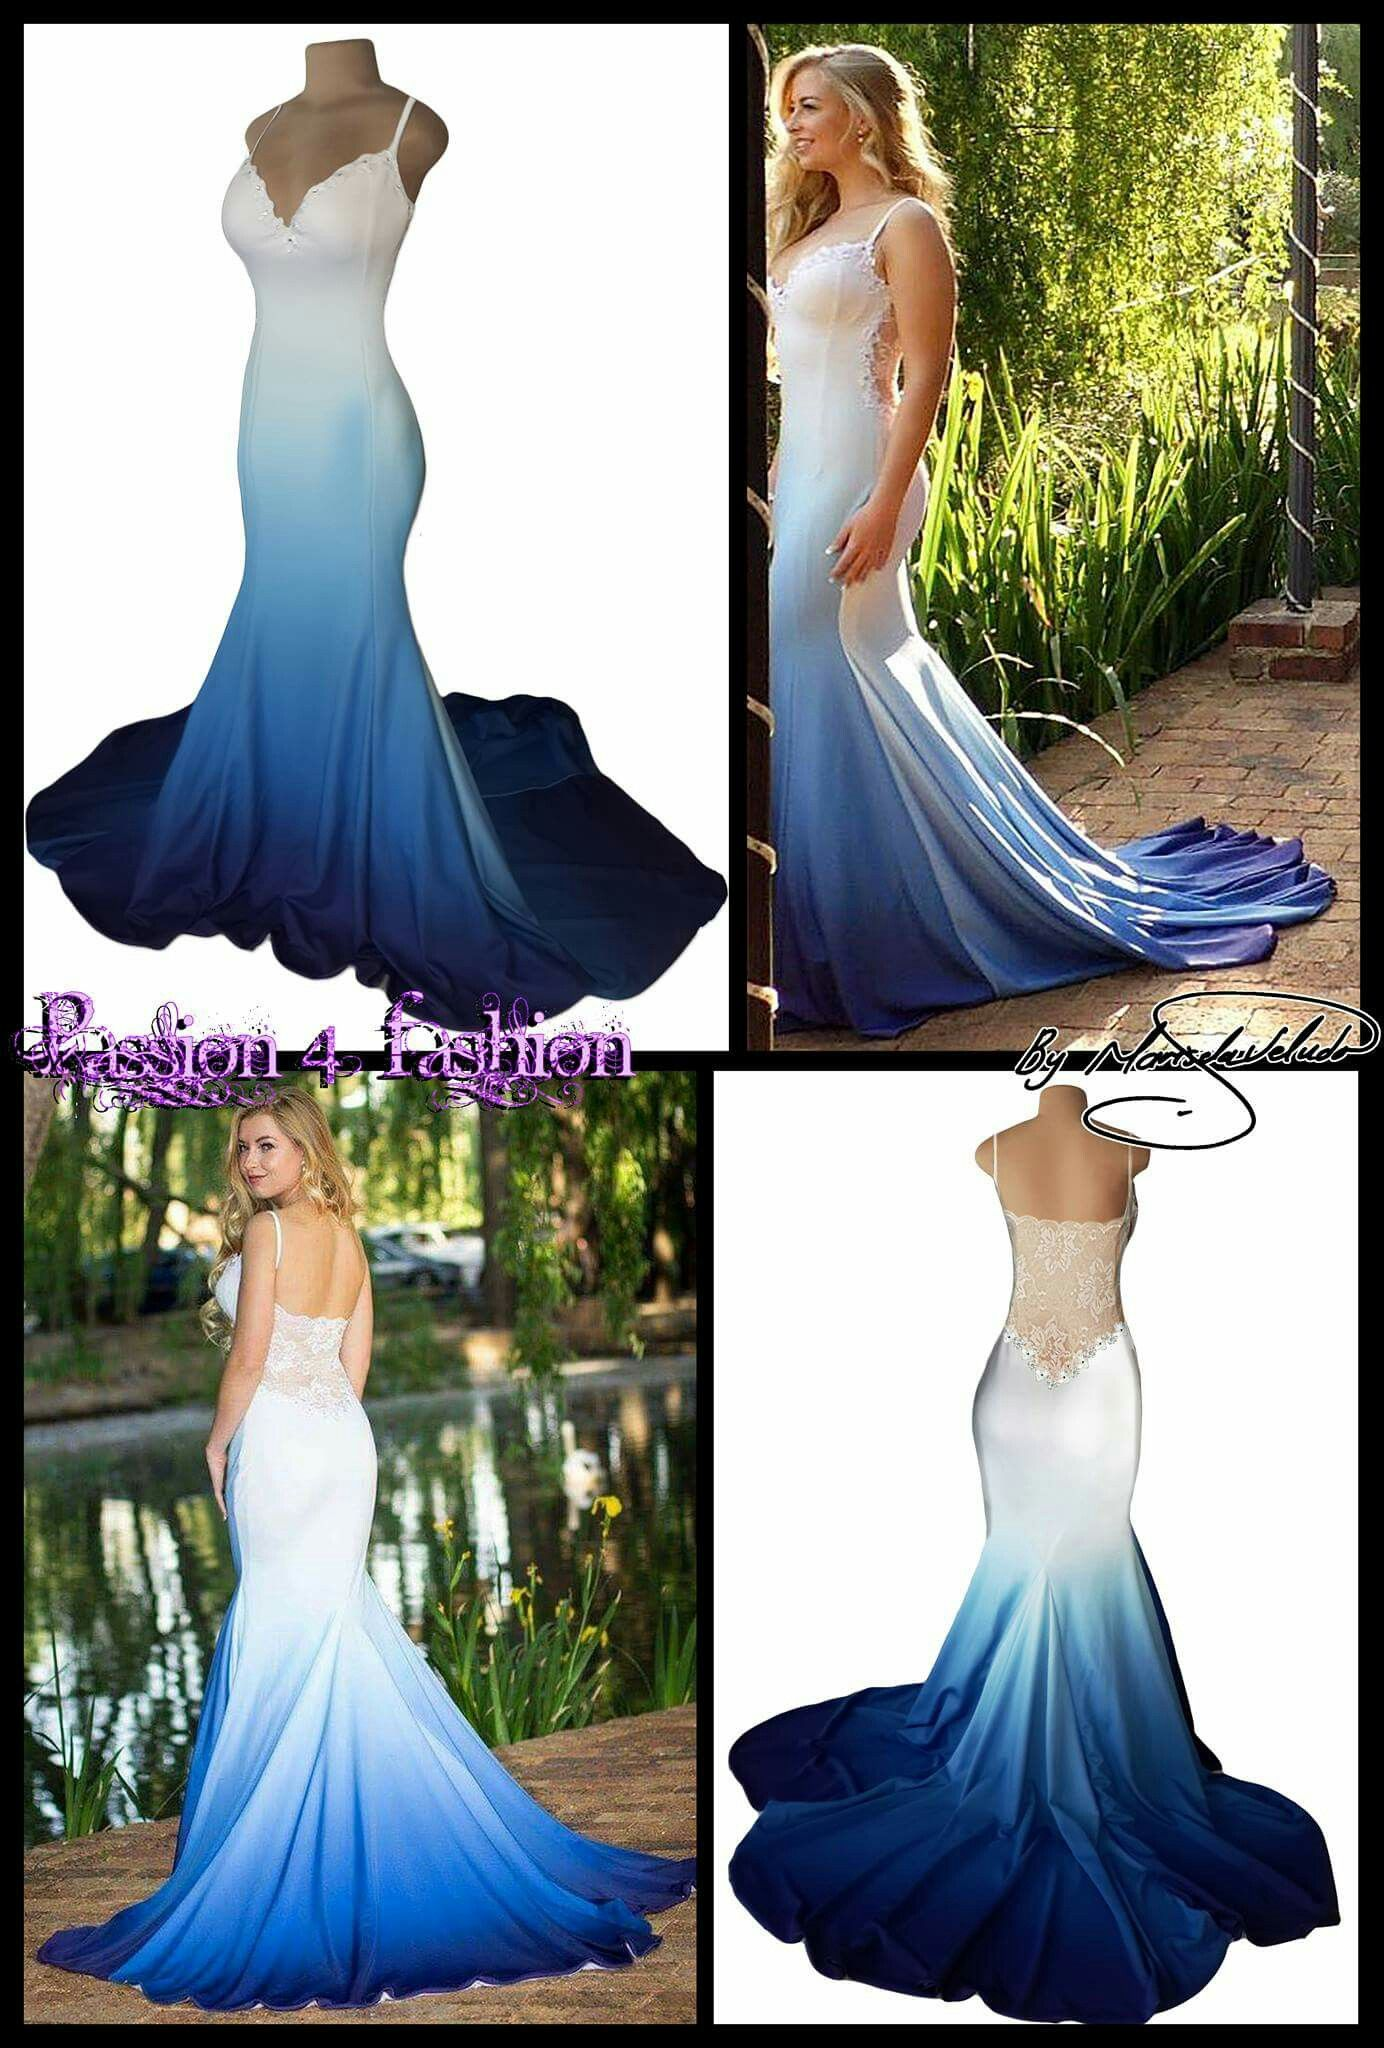 6a77c615332 White   blue ombre. Soft mermaid matric dance dress with a sheer lace back.  Custom printed fabrics . A sweetheart neckline. With a touch of silver  beads and ...